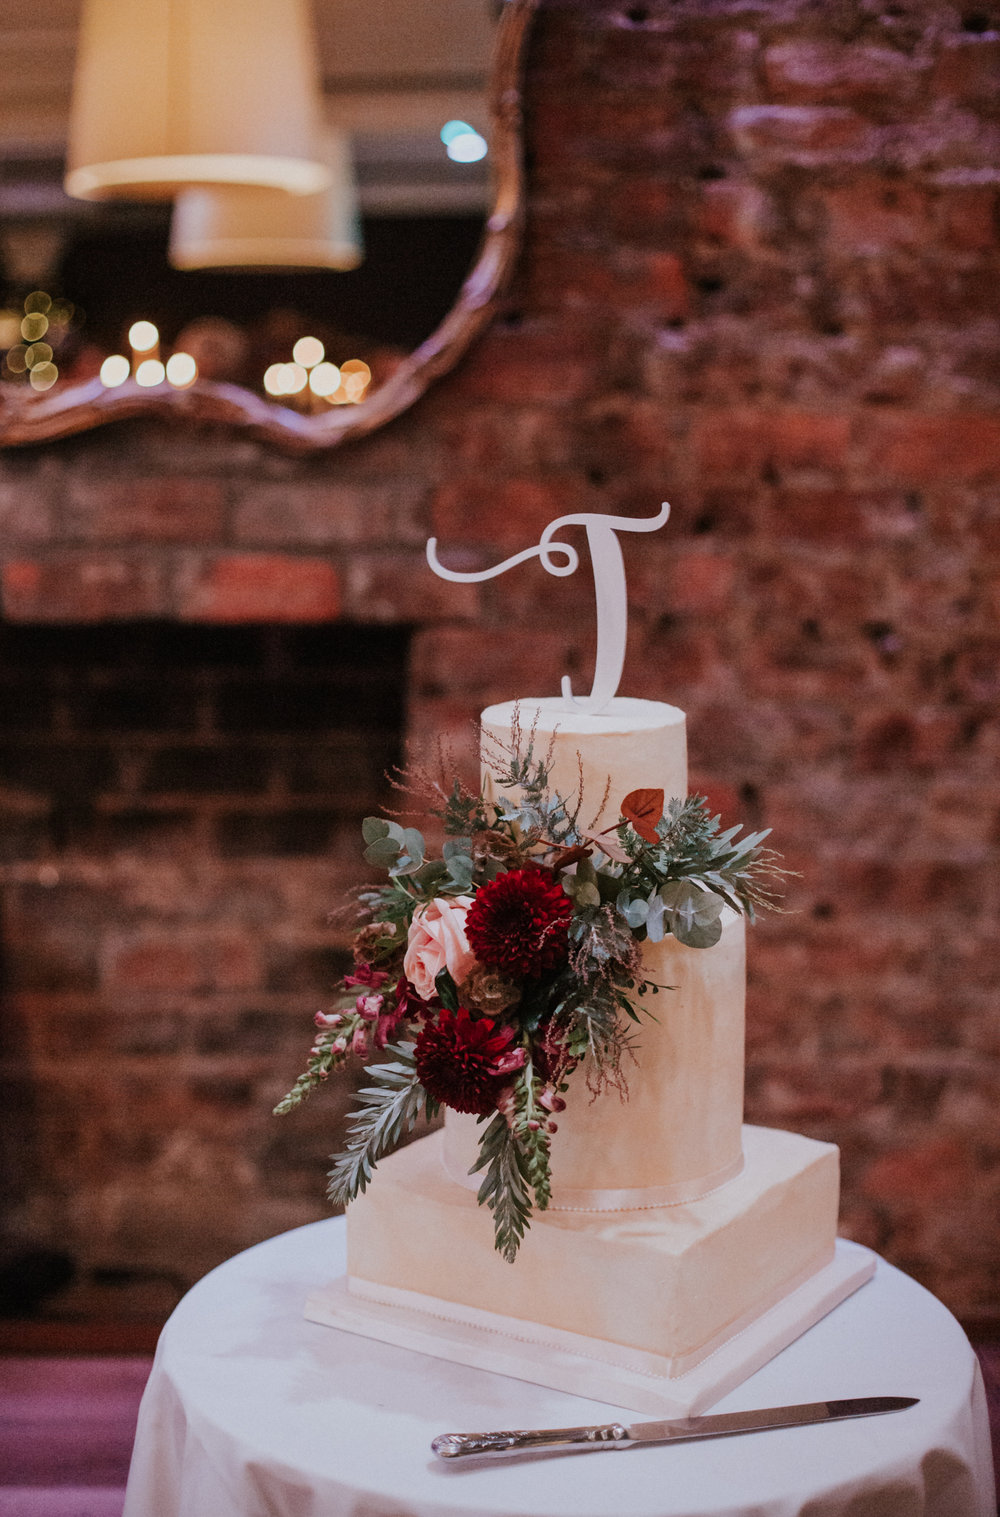 The wedding cake by Sara Giovino, flowers by Floral Menagerie